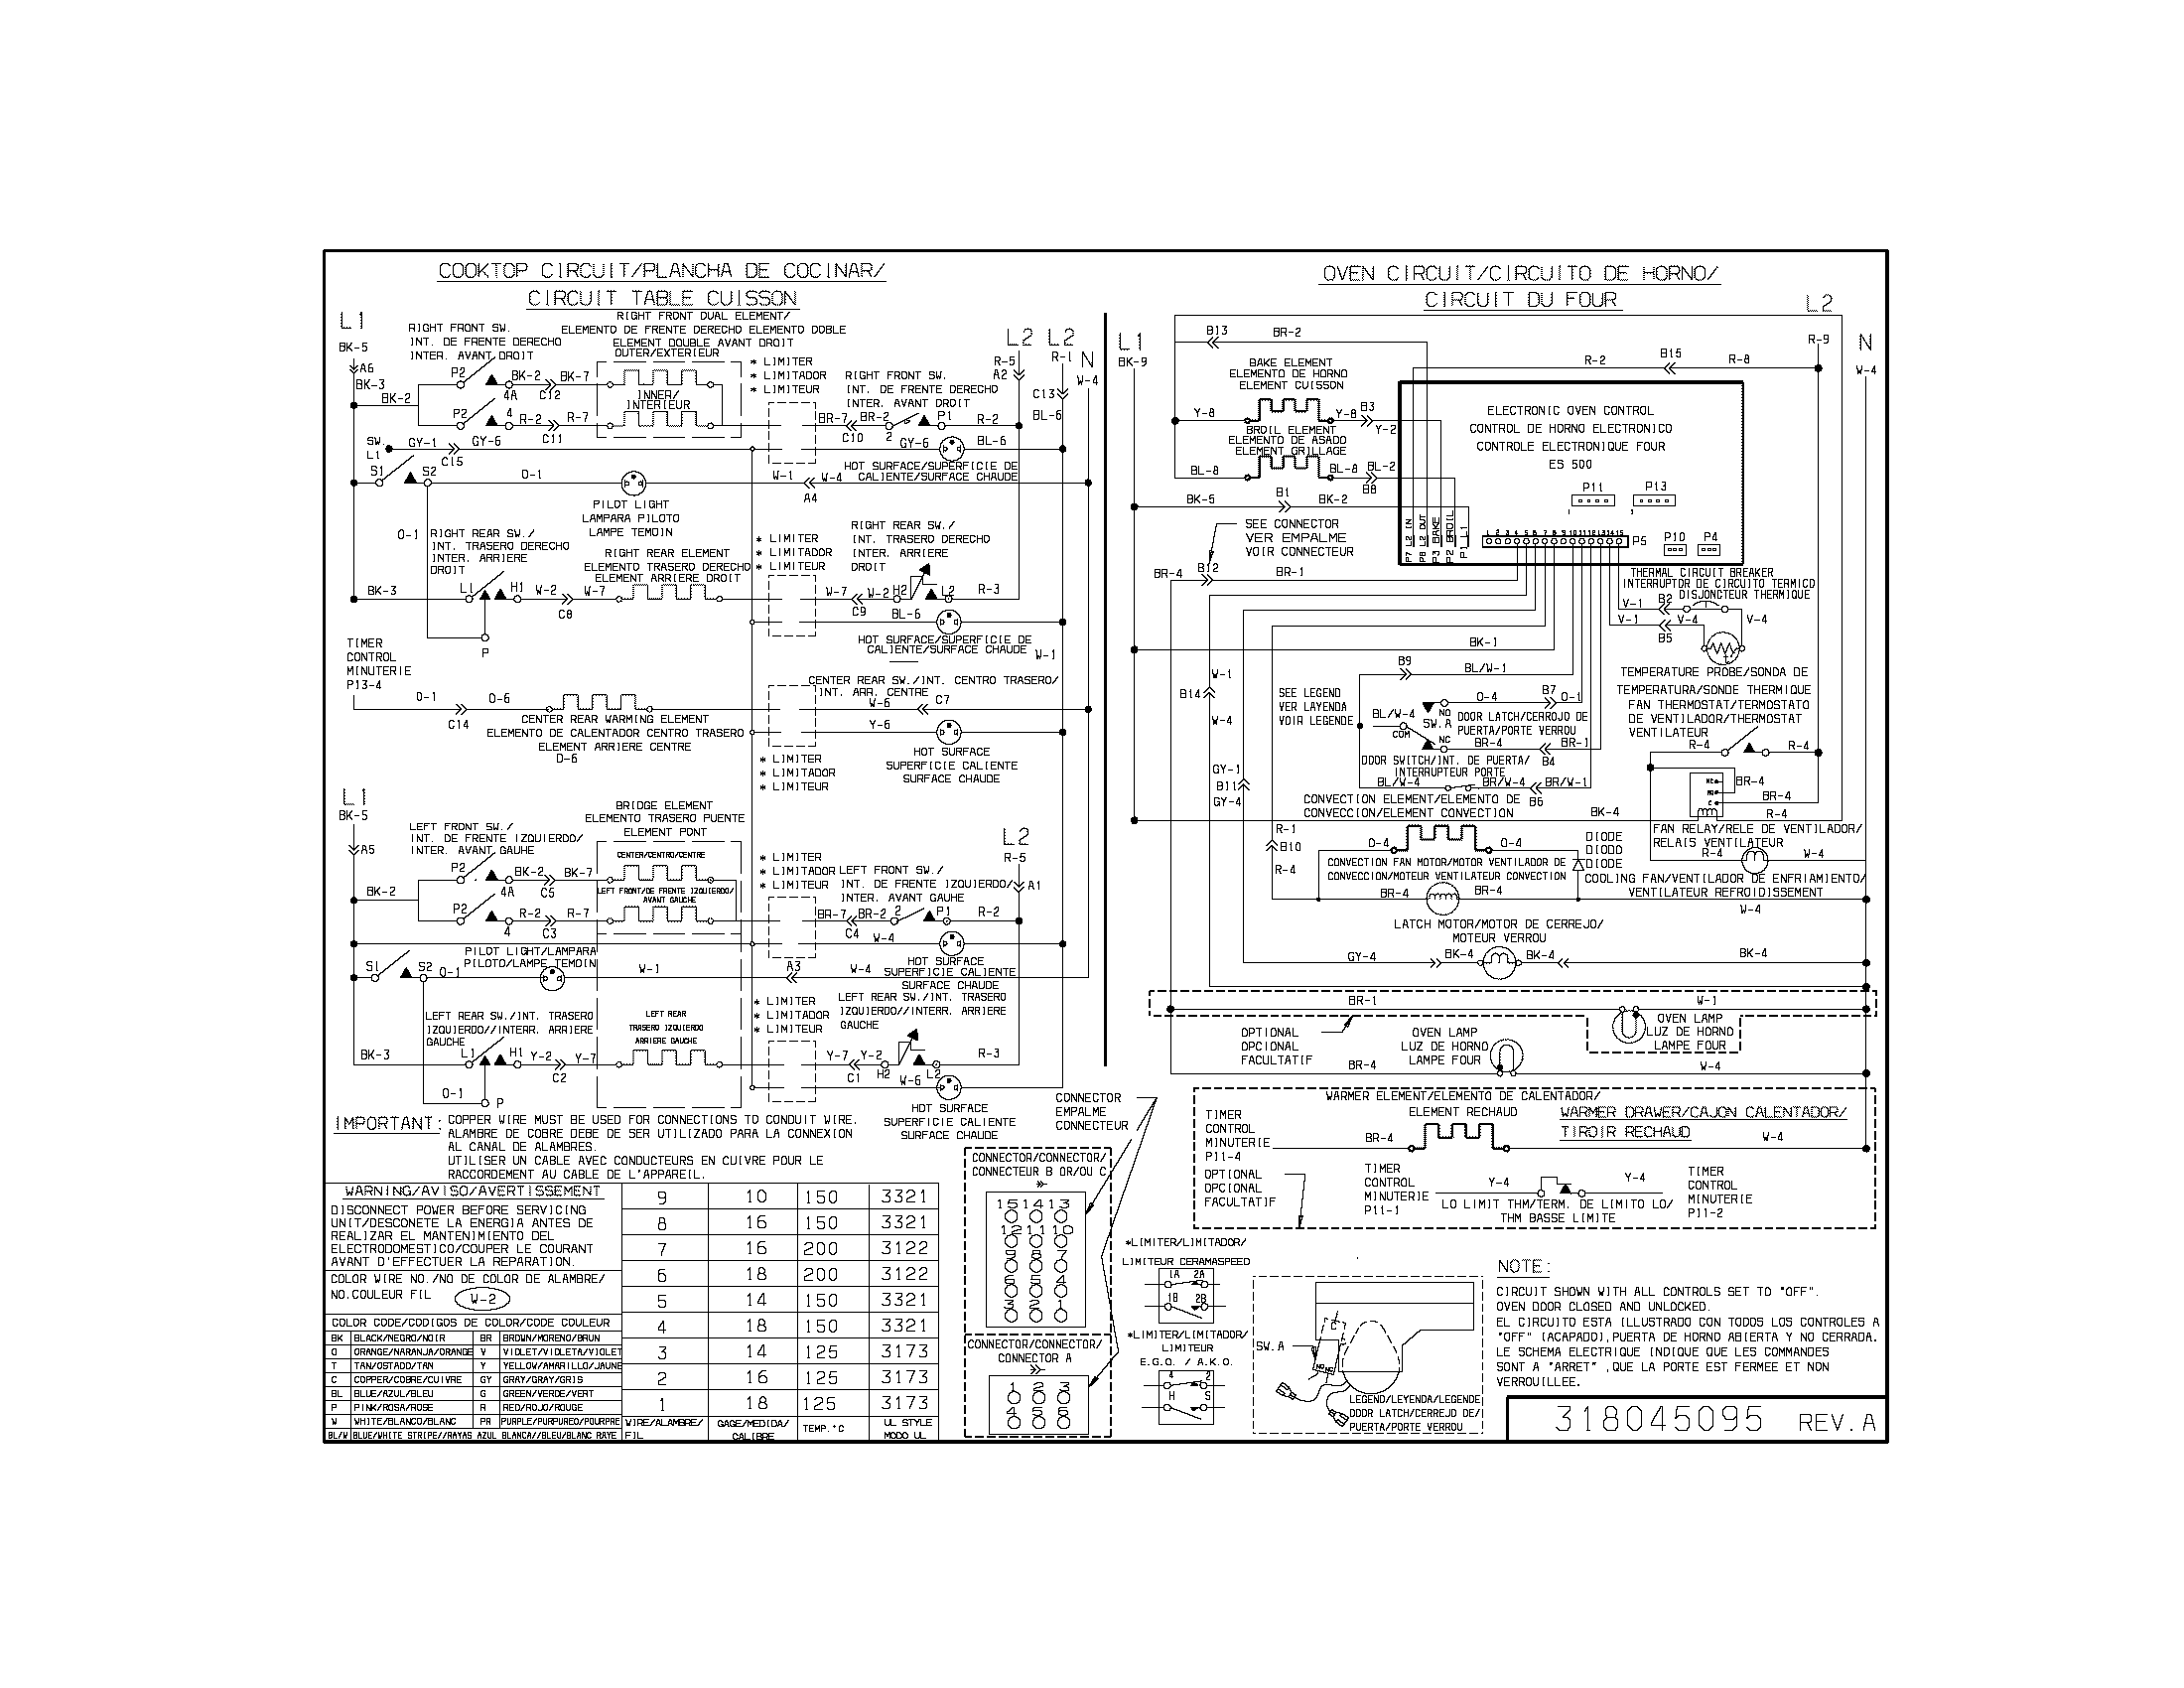 wiring diagram parts?resize\=665%2C514\&ssl\=1 e g o simmerstat wiring diagram simmerstat connections \u2022 45 63 74 91 Simple Electrical Wiring Diagrams at readyjetset.co